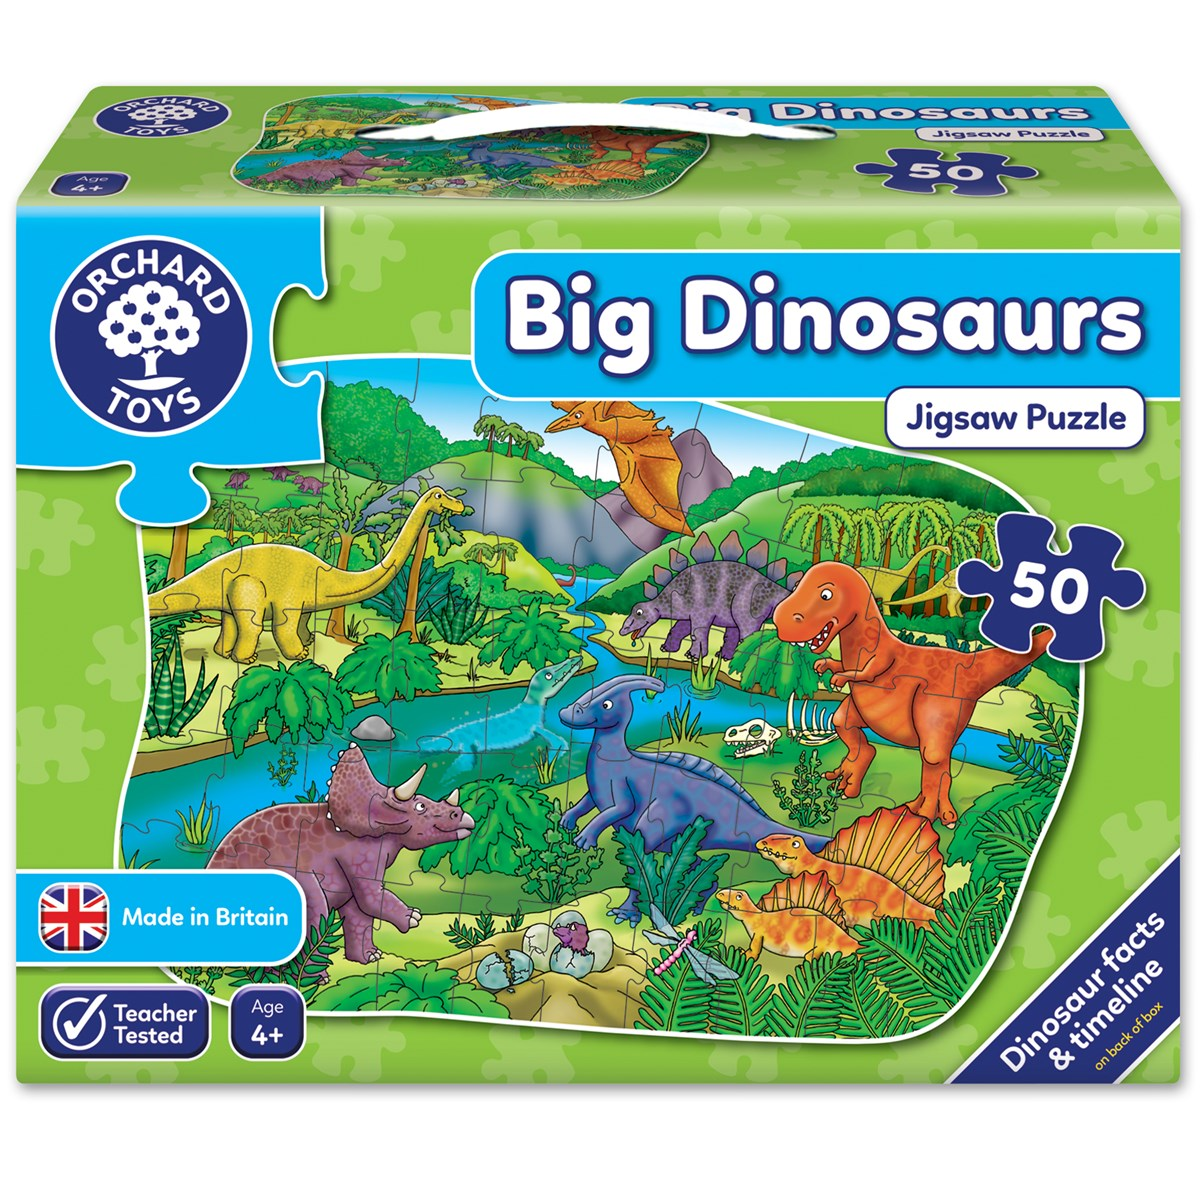 Details about Orchard Toys 256 Big Dinosaur 50 Piece Jigsaw Puzzle Toddler  Children Age 4yrs+